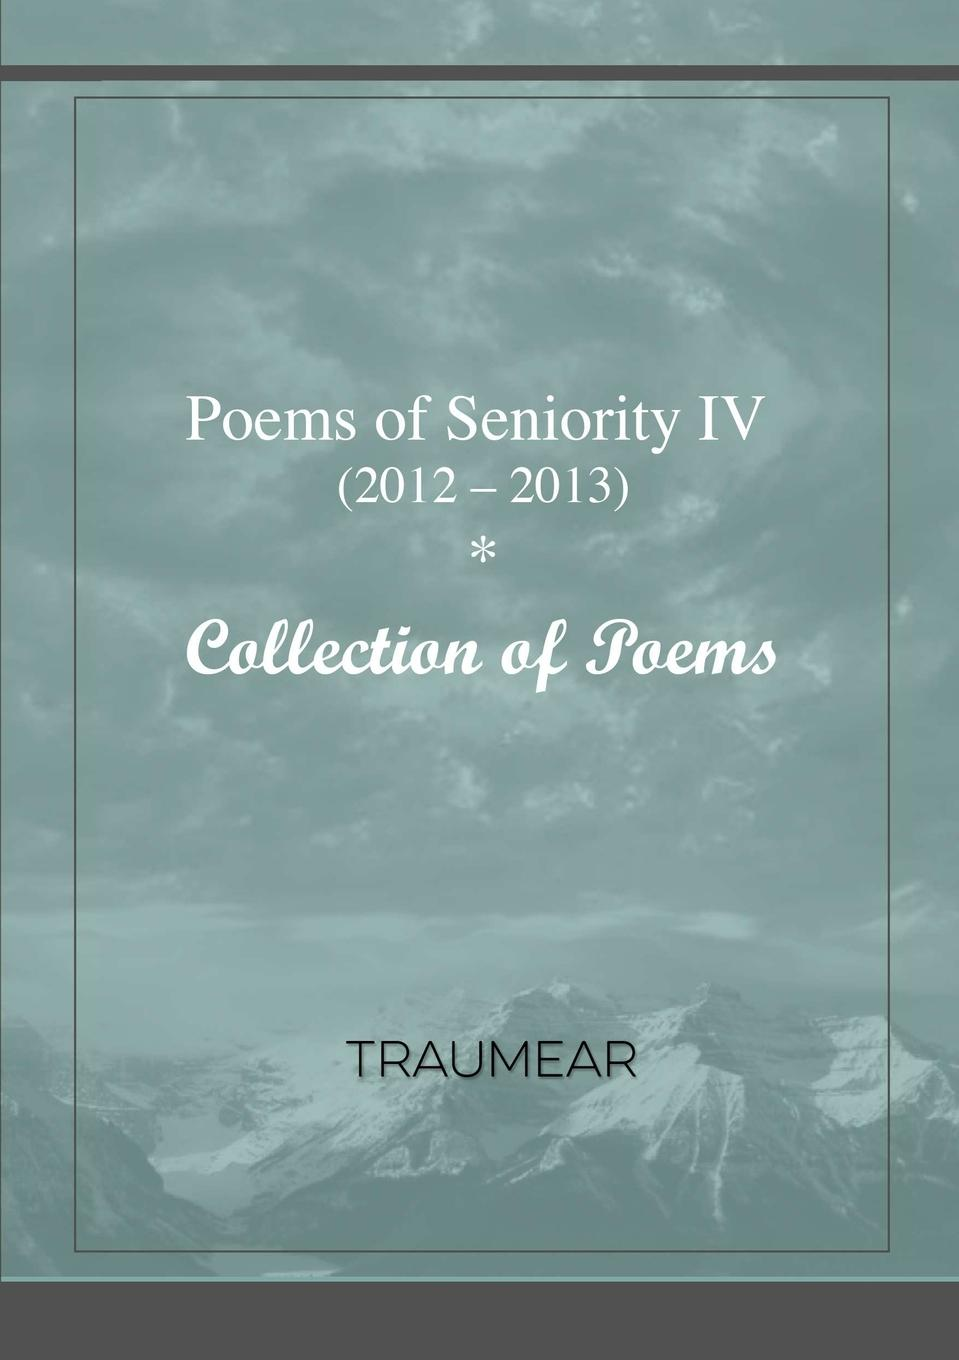 Traumear Poems of Seniority IV - Isn.t it wonderful цены